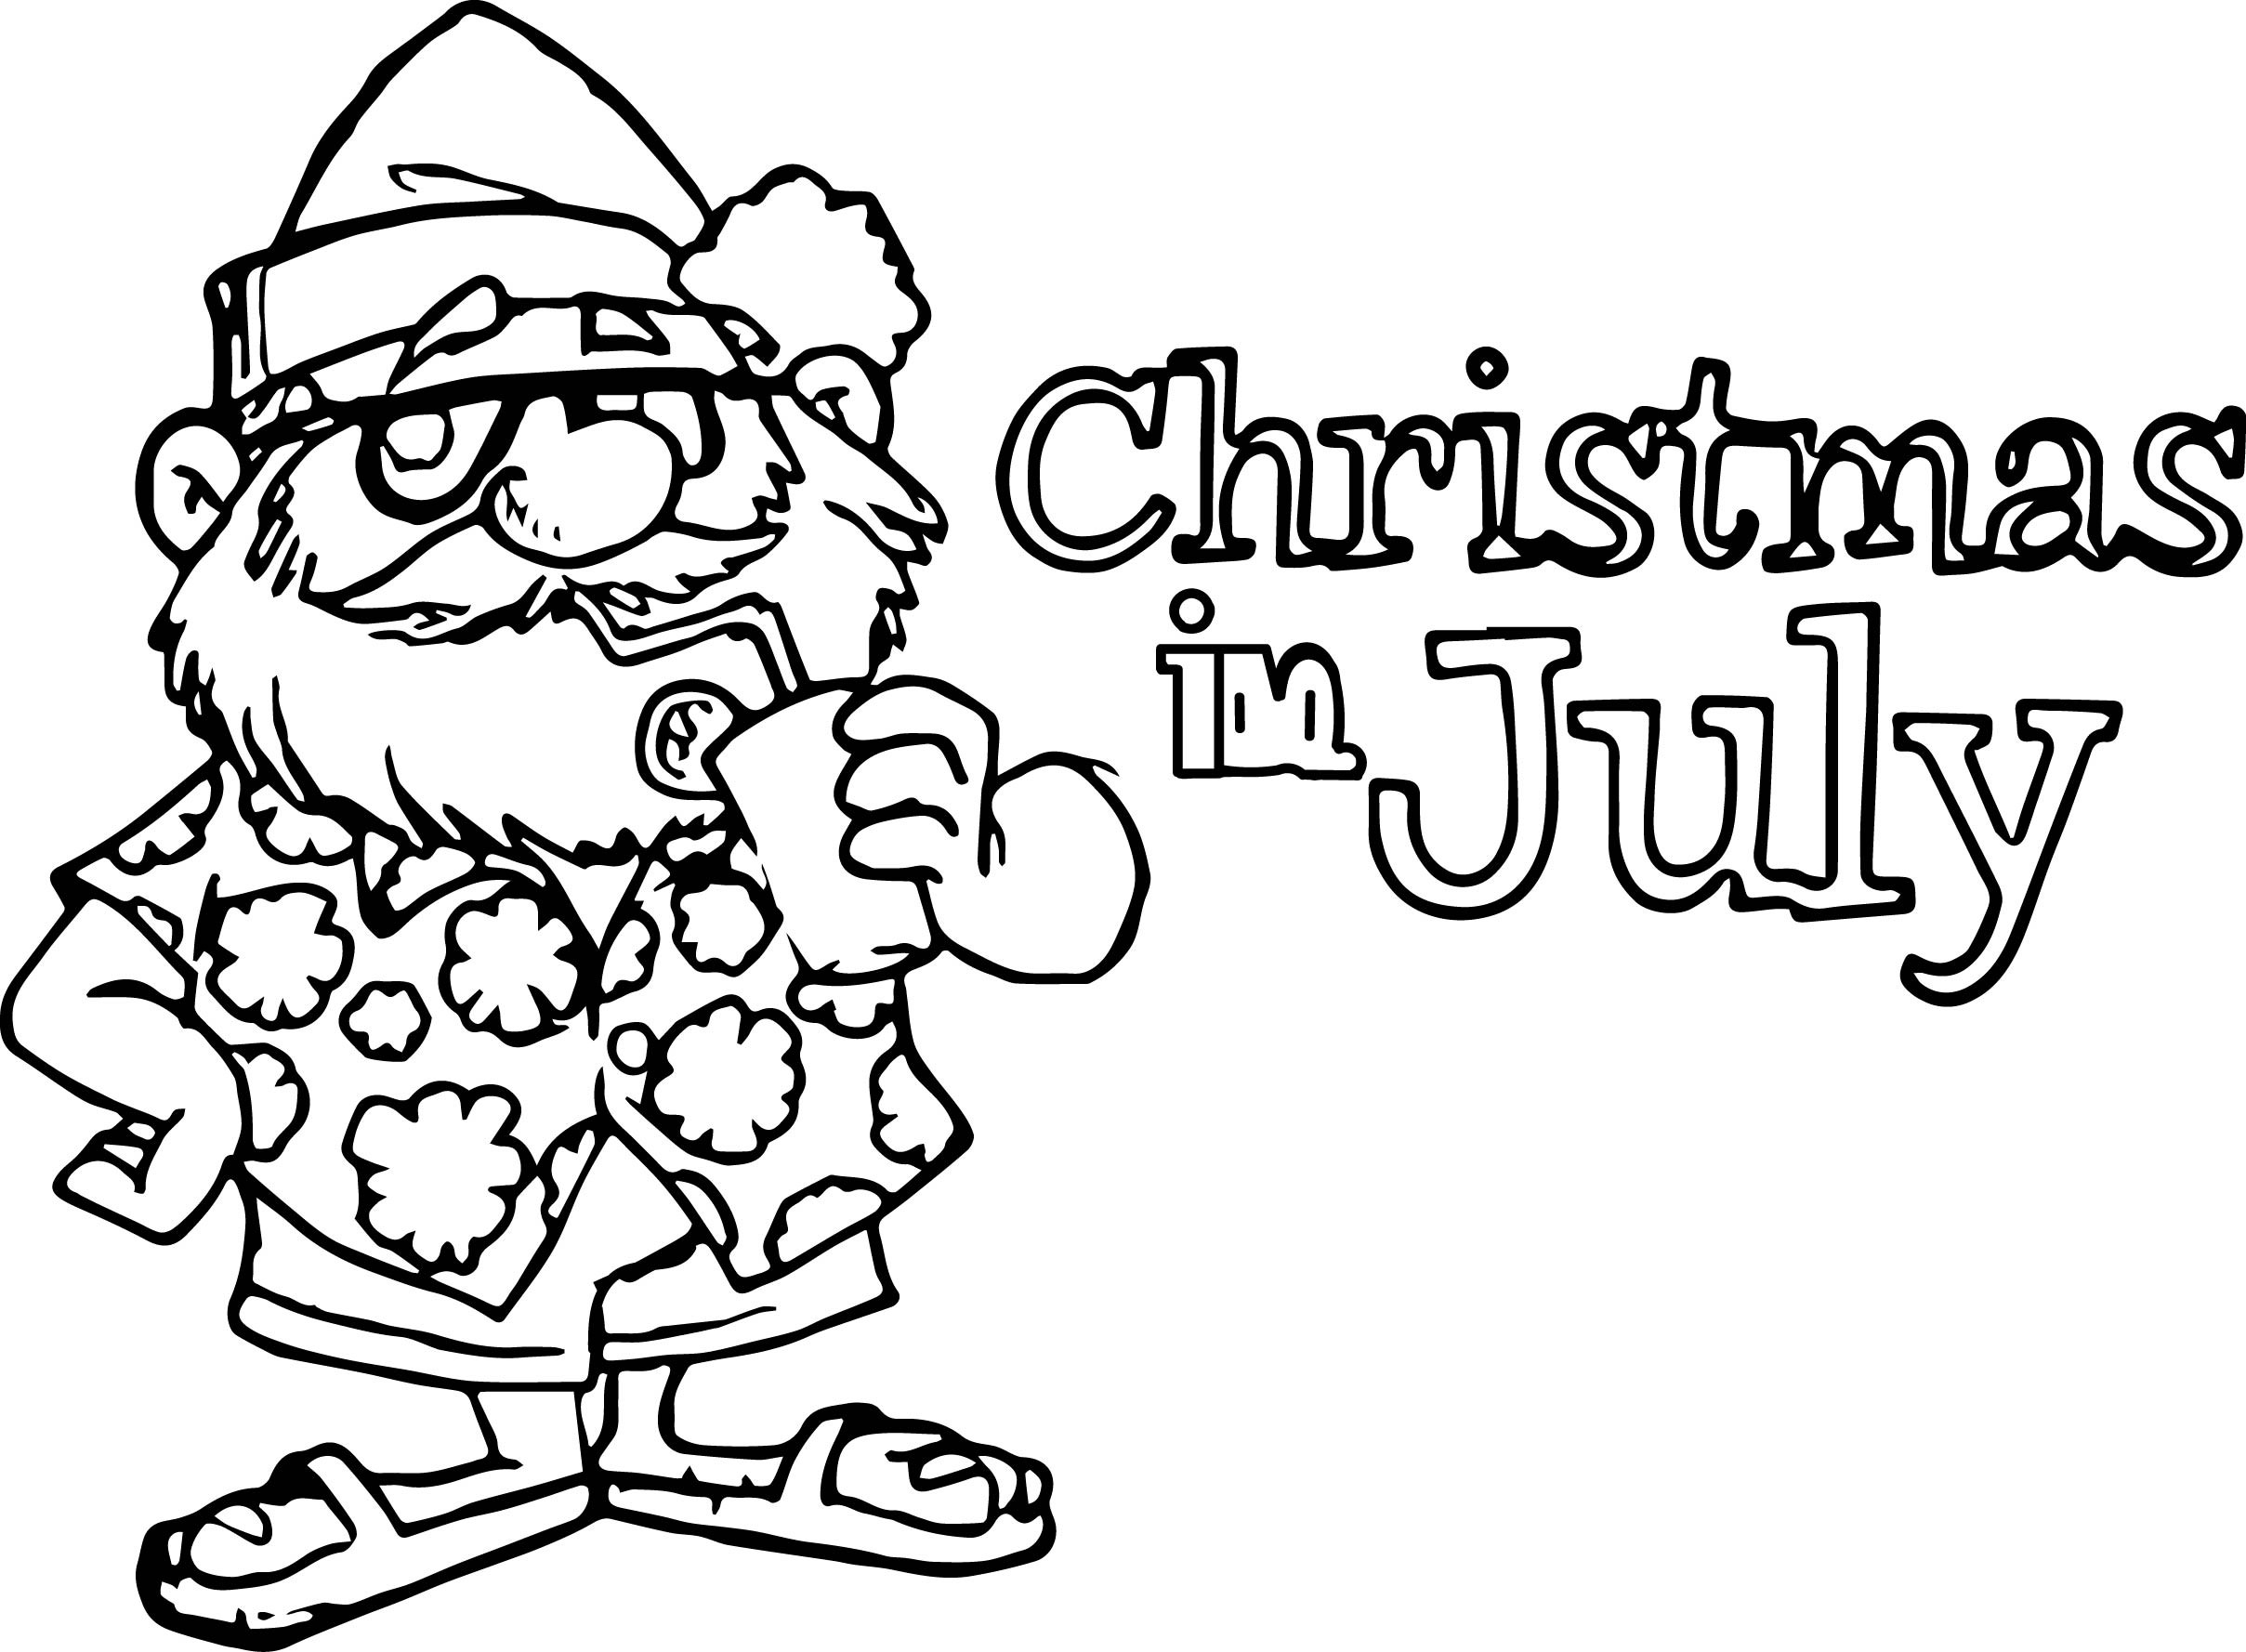 Christmas In July Coloring Pages With Printable Page For Kids